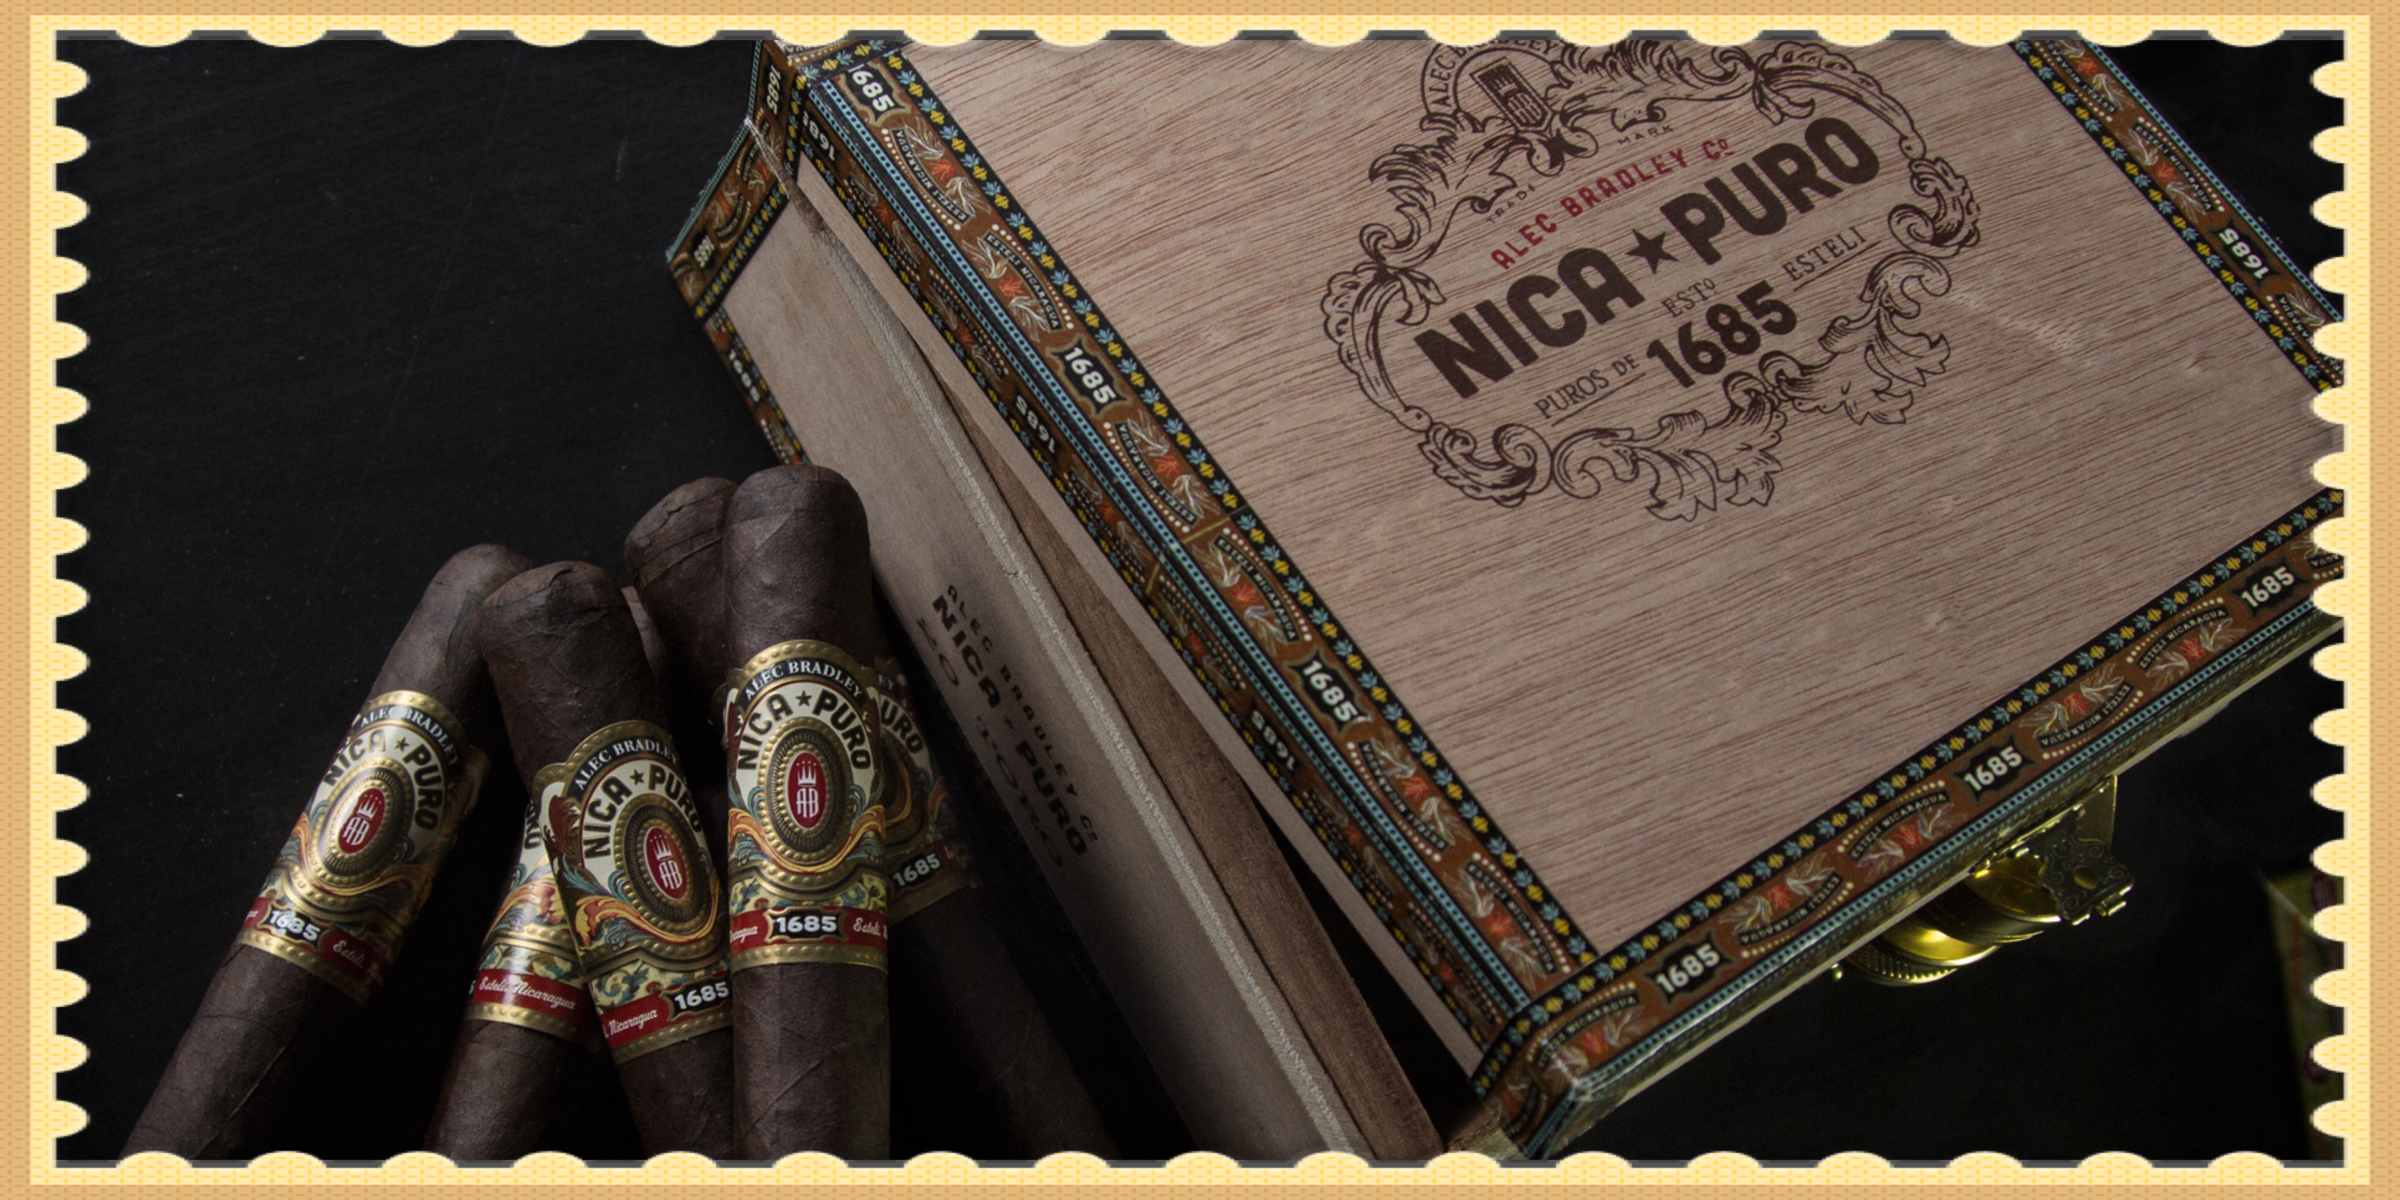 alec-bradley-nica-puro-category.jpg